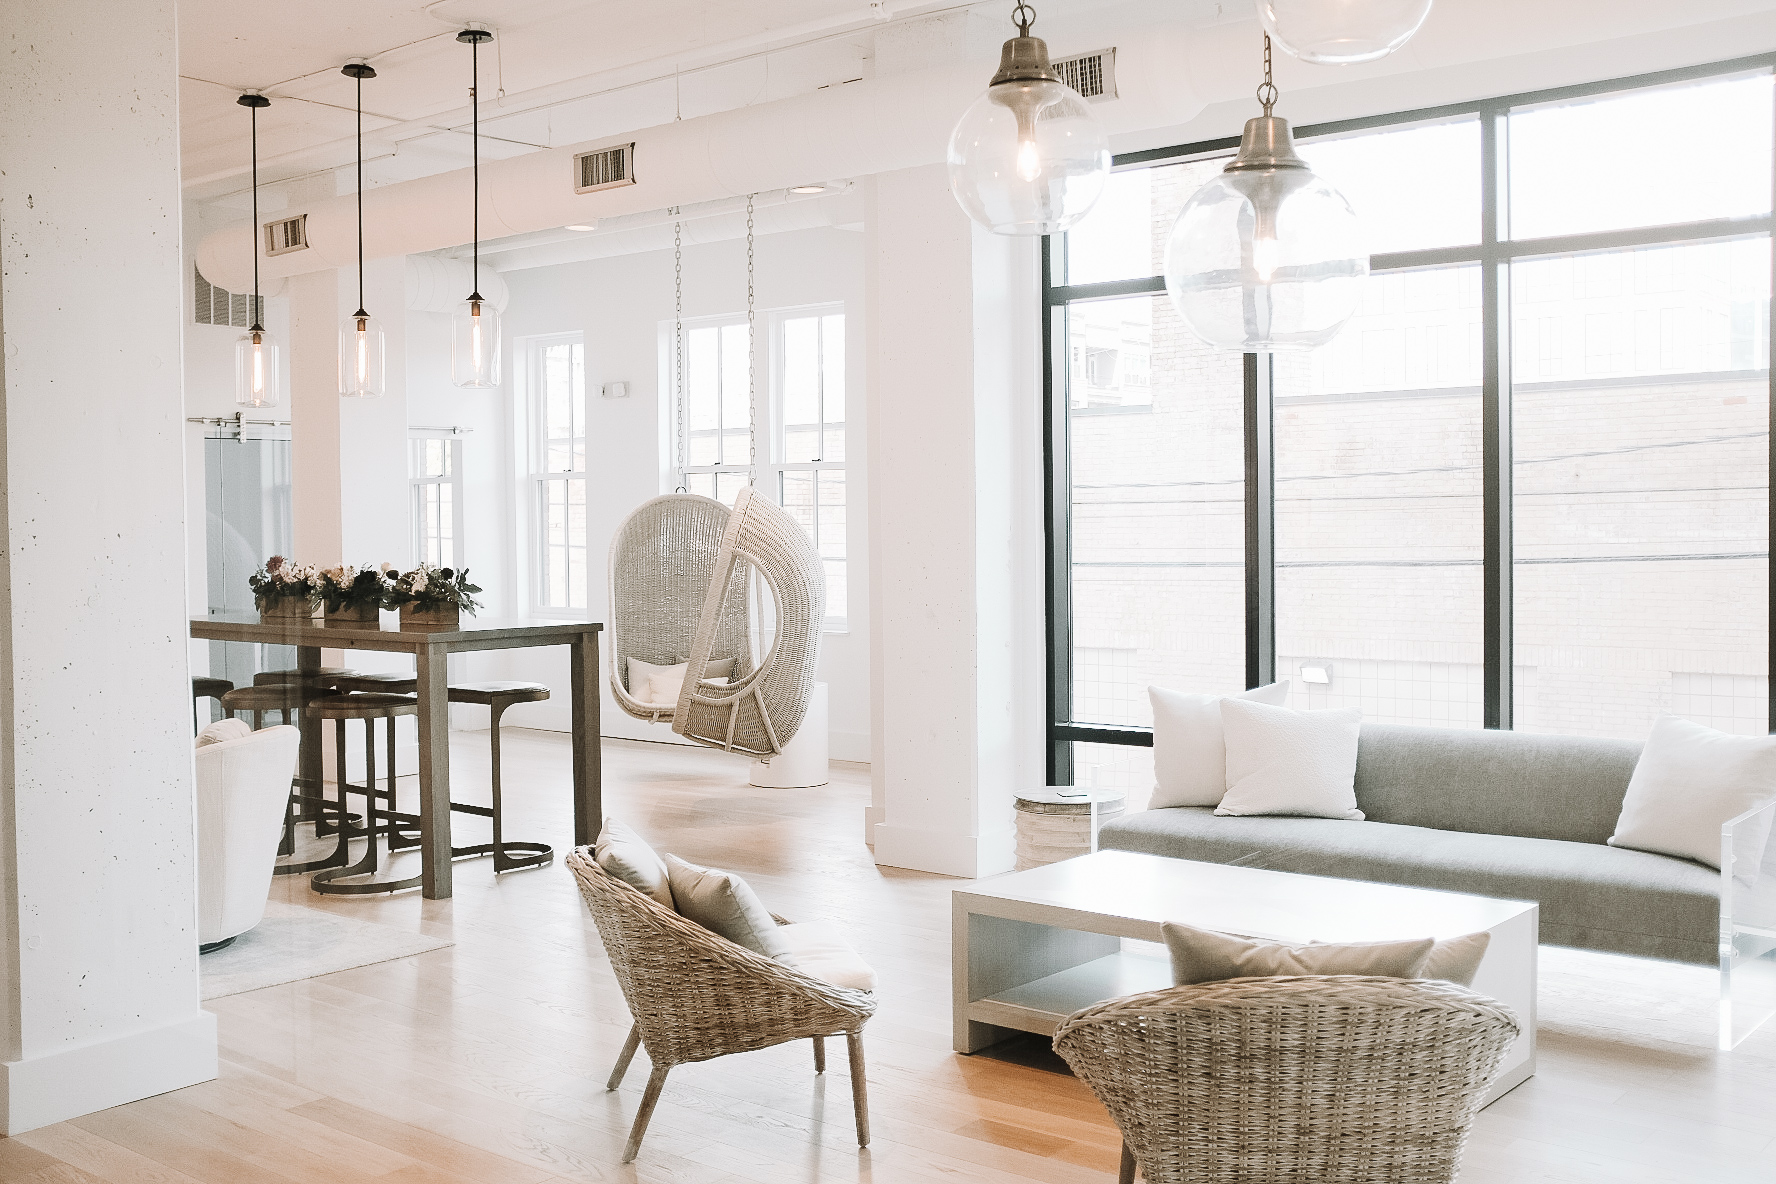 explore the collab studio - Designed as the perfect place for a meeting of the minds, The Collab Studio features flexible seating, private conferencing and a dynamic workroom for our team to host client and team sessions alike.